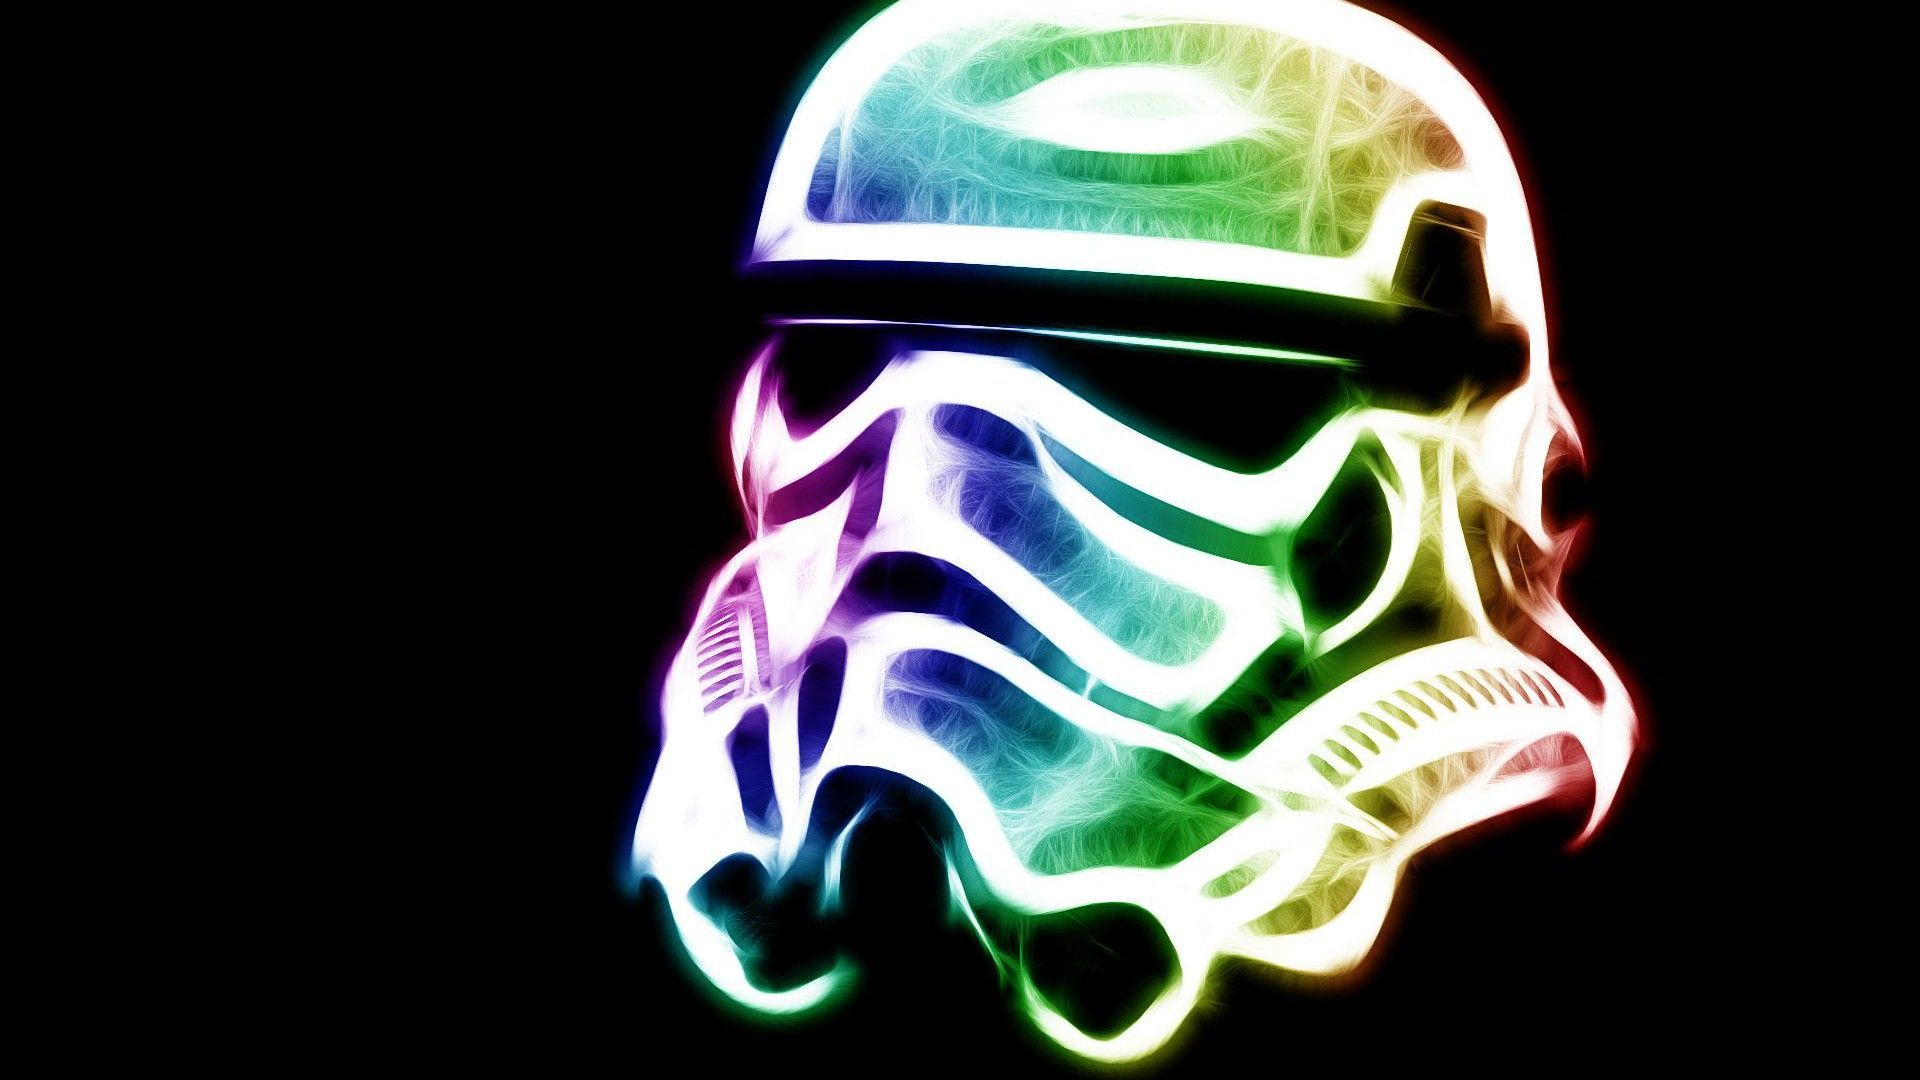 Cool Wallpapers Star Wars , HD Wallpaper & Backgrounds